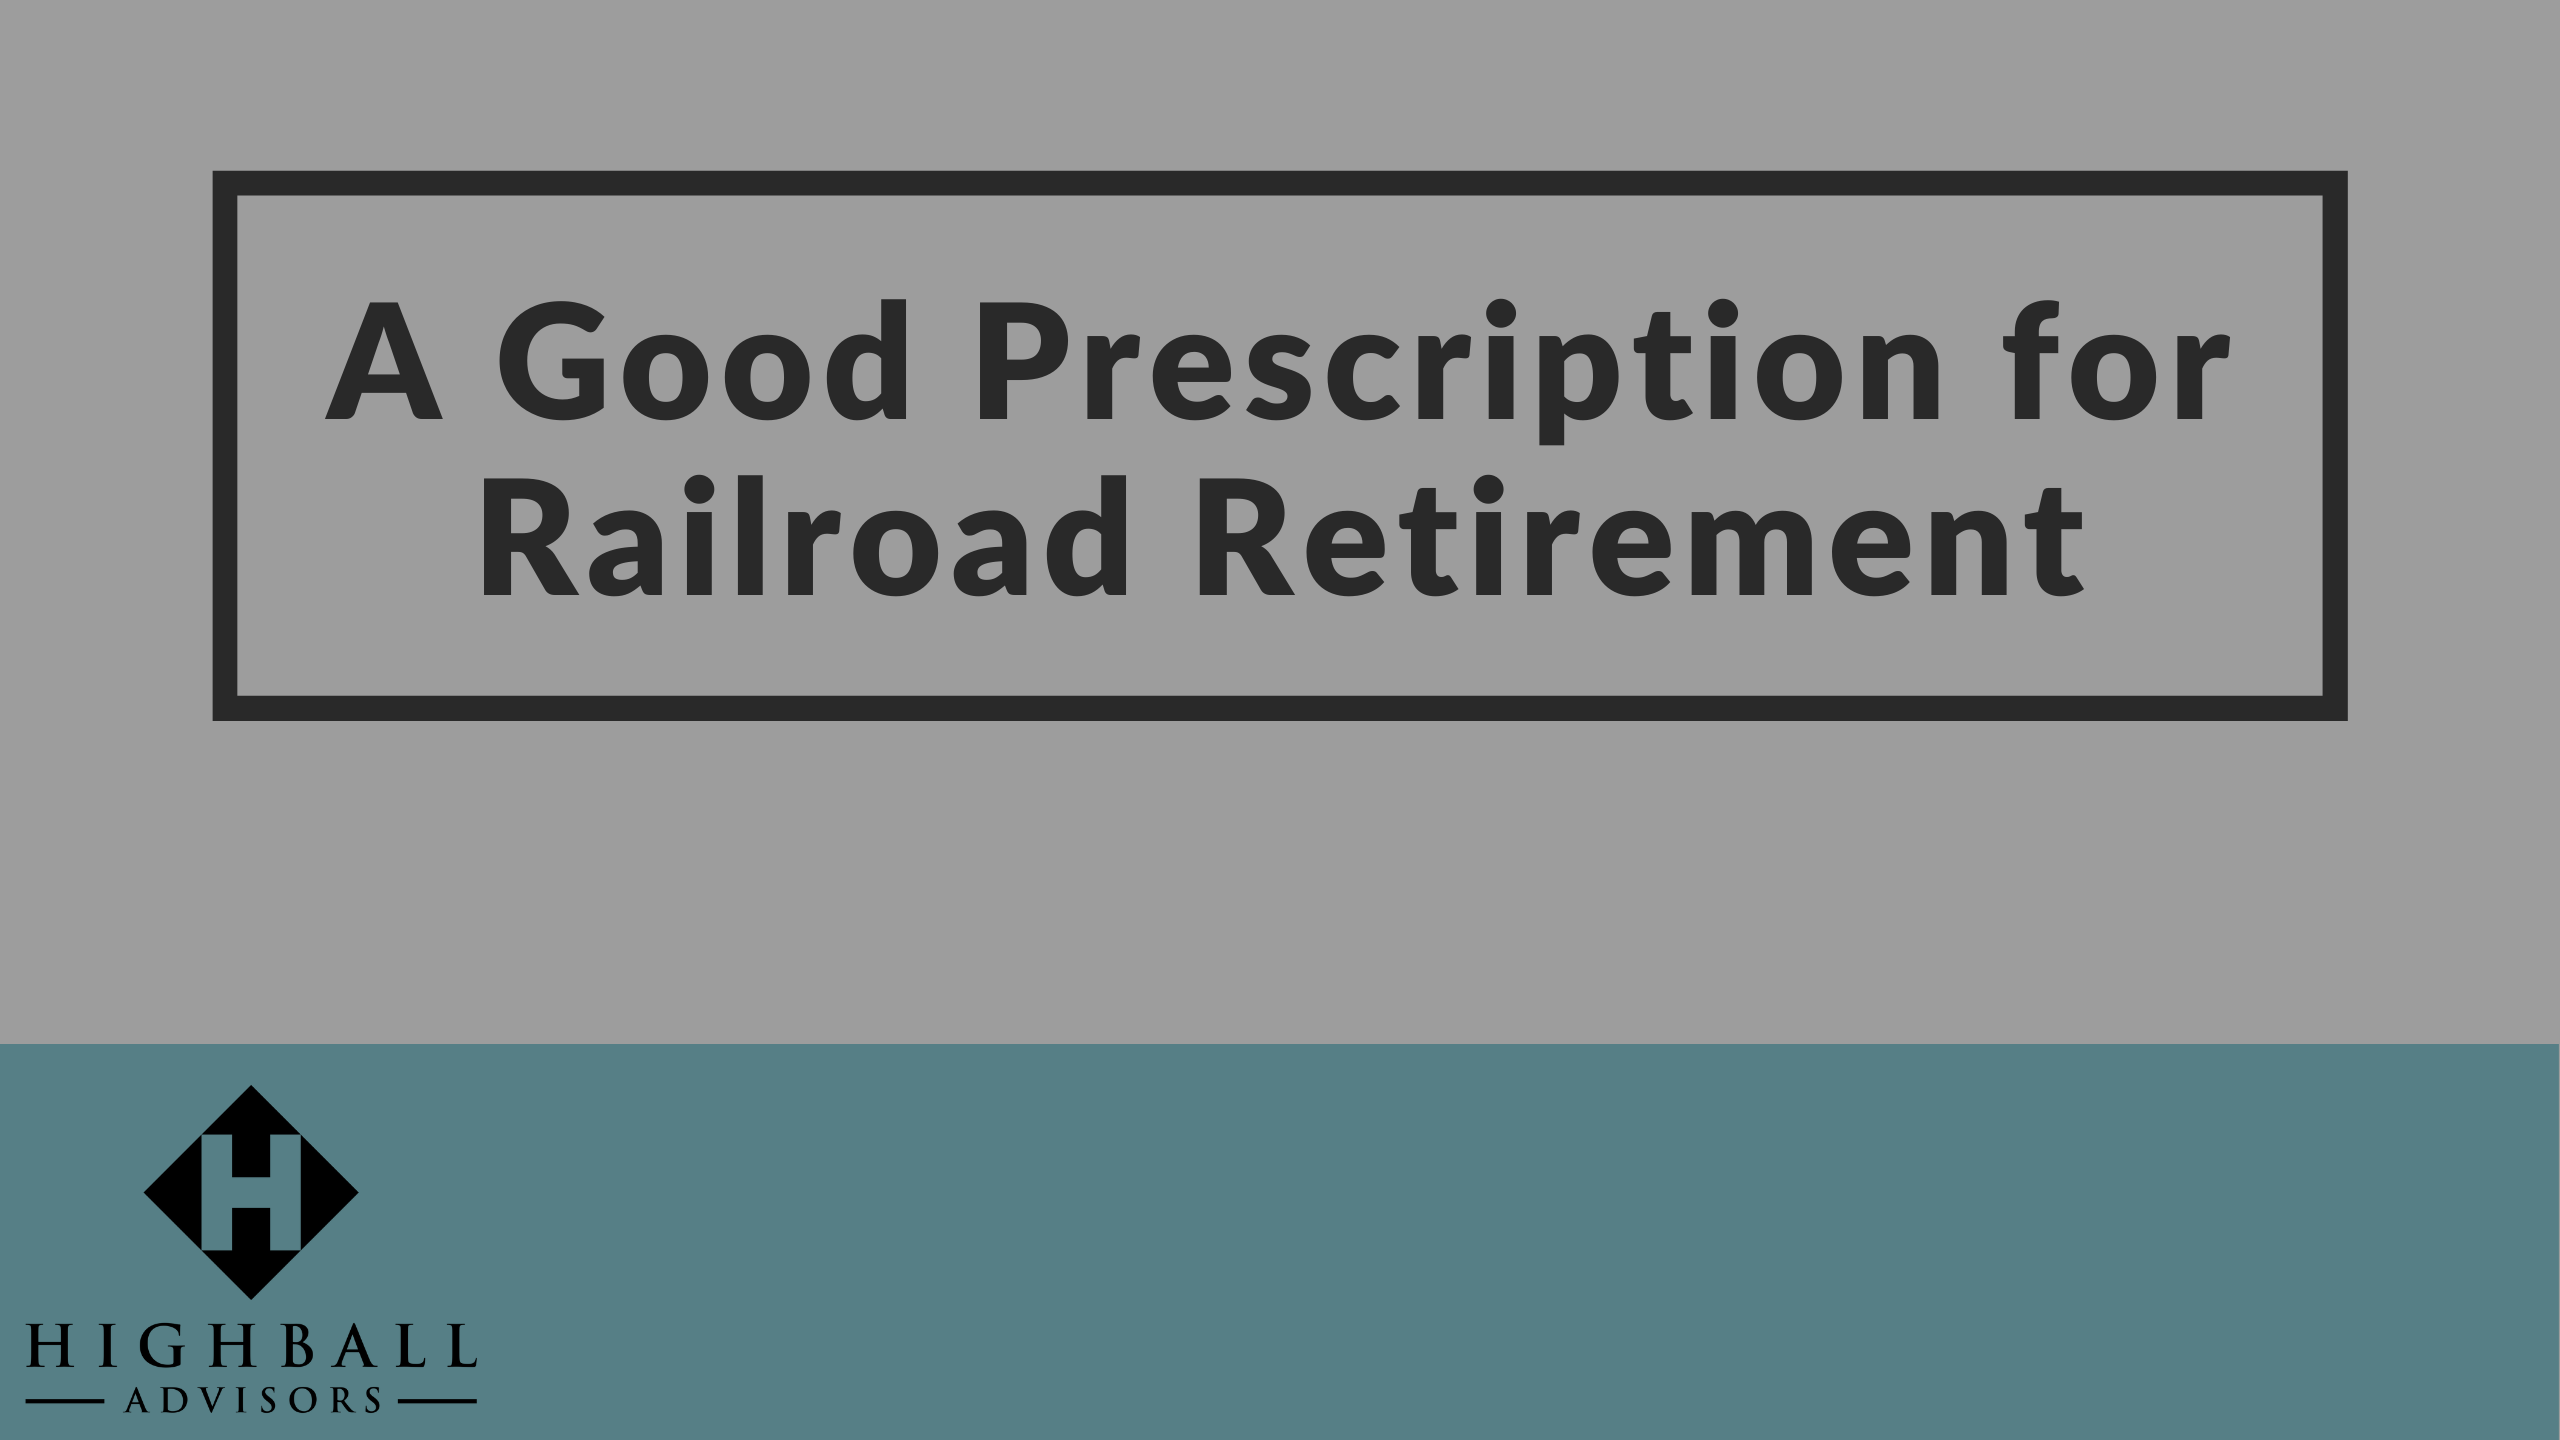 A Good Prescription for Railroad Retirement Thumbnail